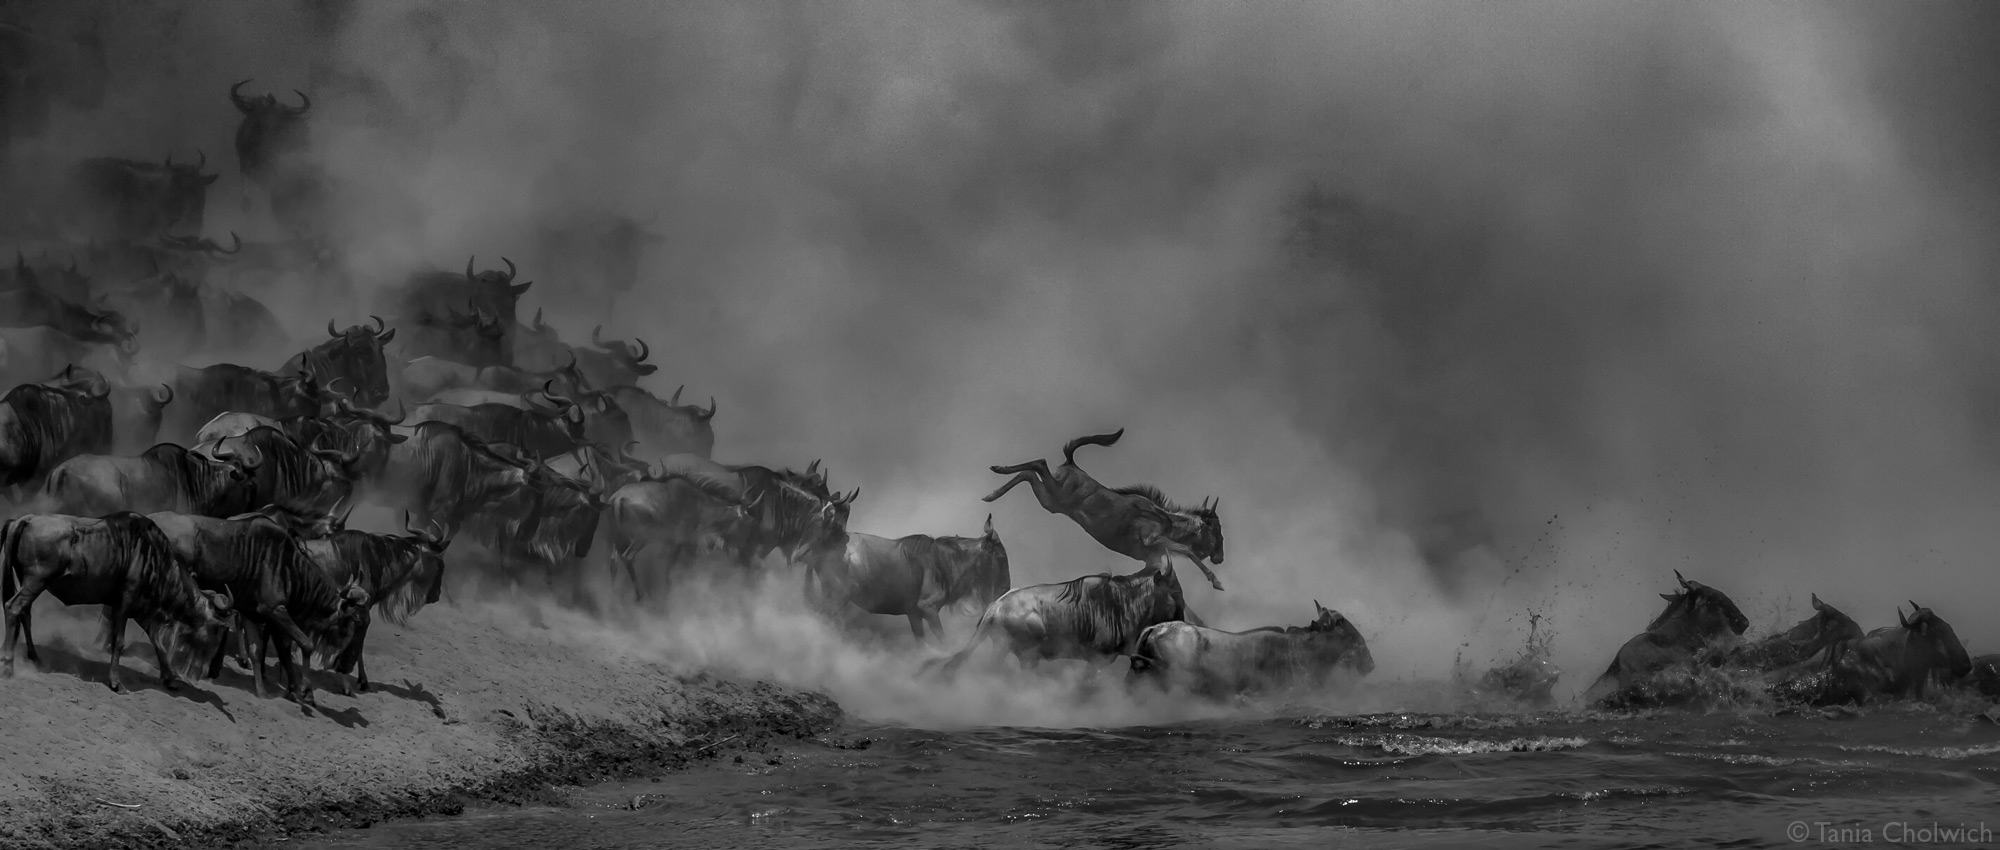 Wildbeest entering the Mara River during the Great Migration